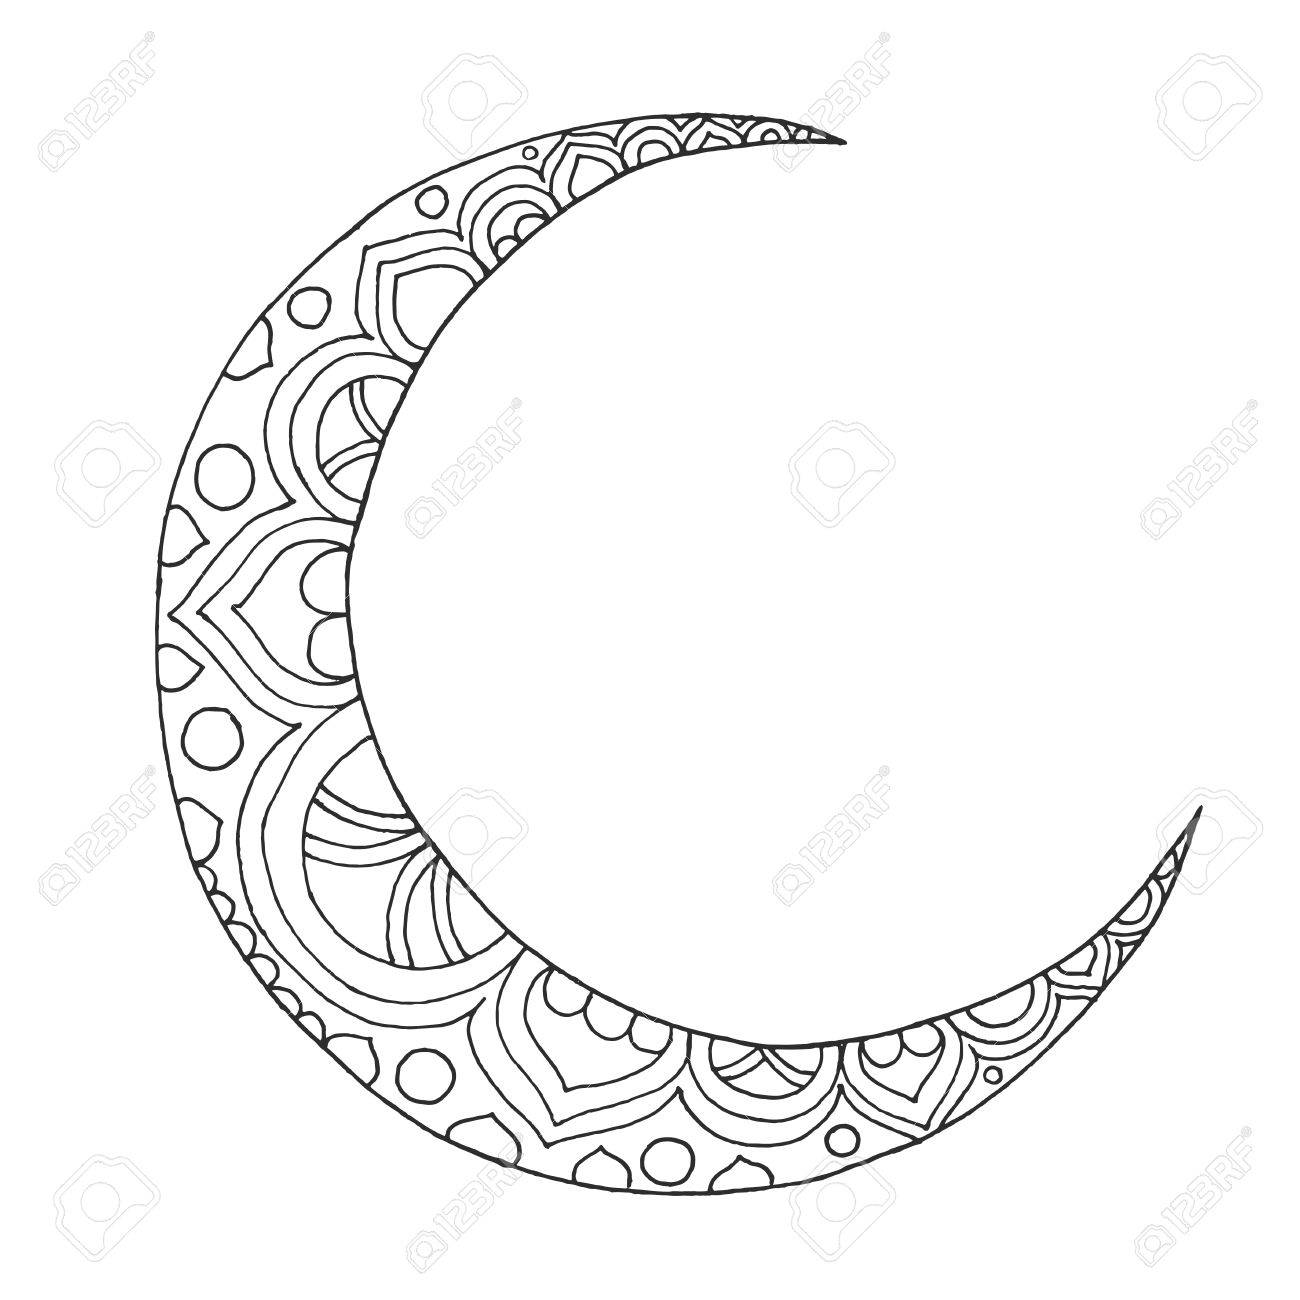 1300x1300 Quality Half Moon Coloring Page Crescent Acpra